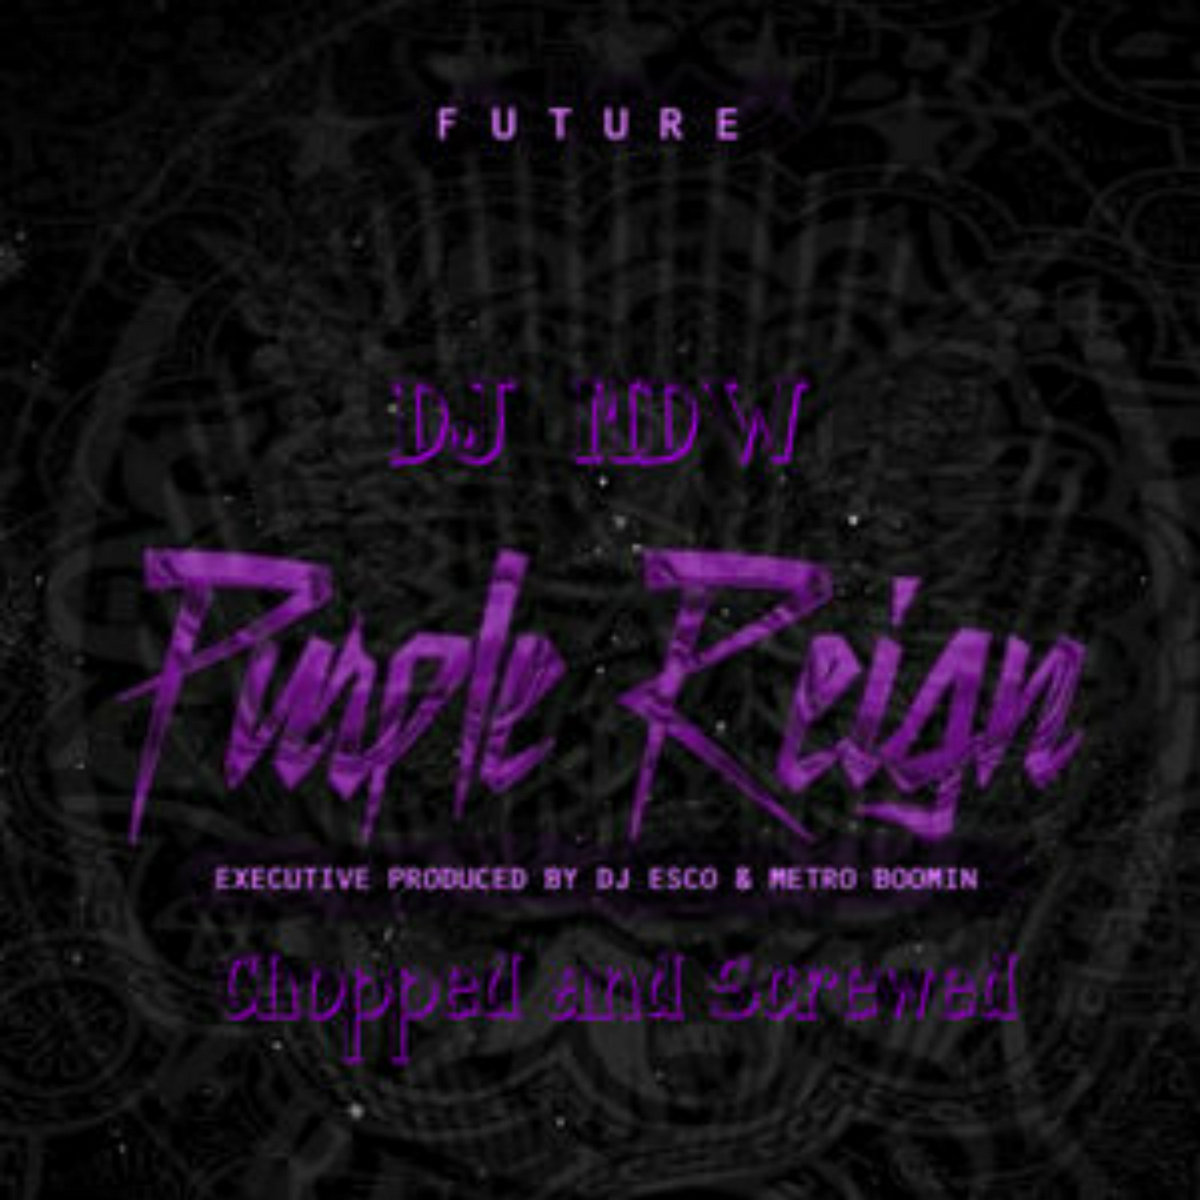 1dcf13f18 Future - Purple Reign (Chopped and Screwed) by DJ MDW